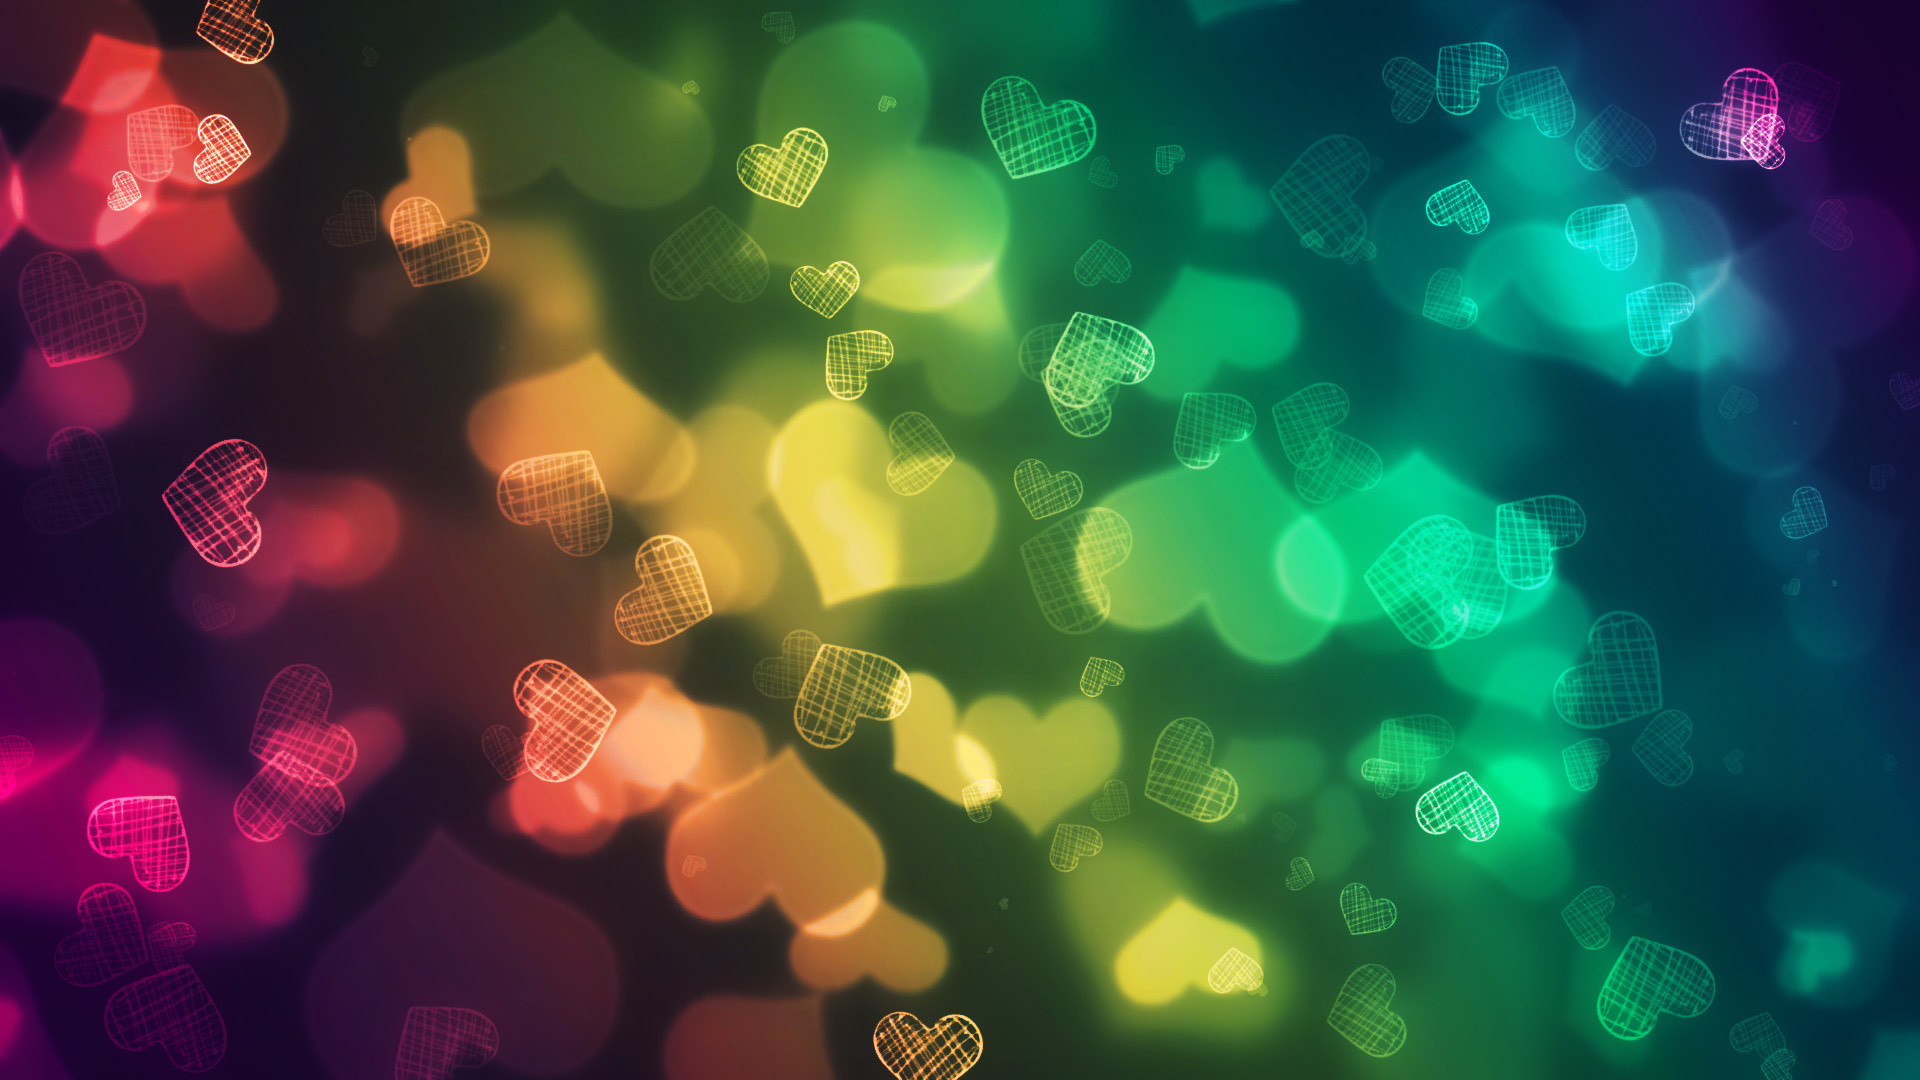 Tags: love, colorful, heart